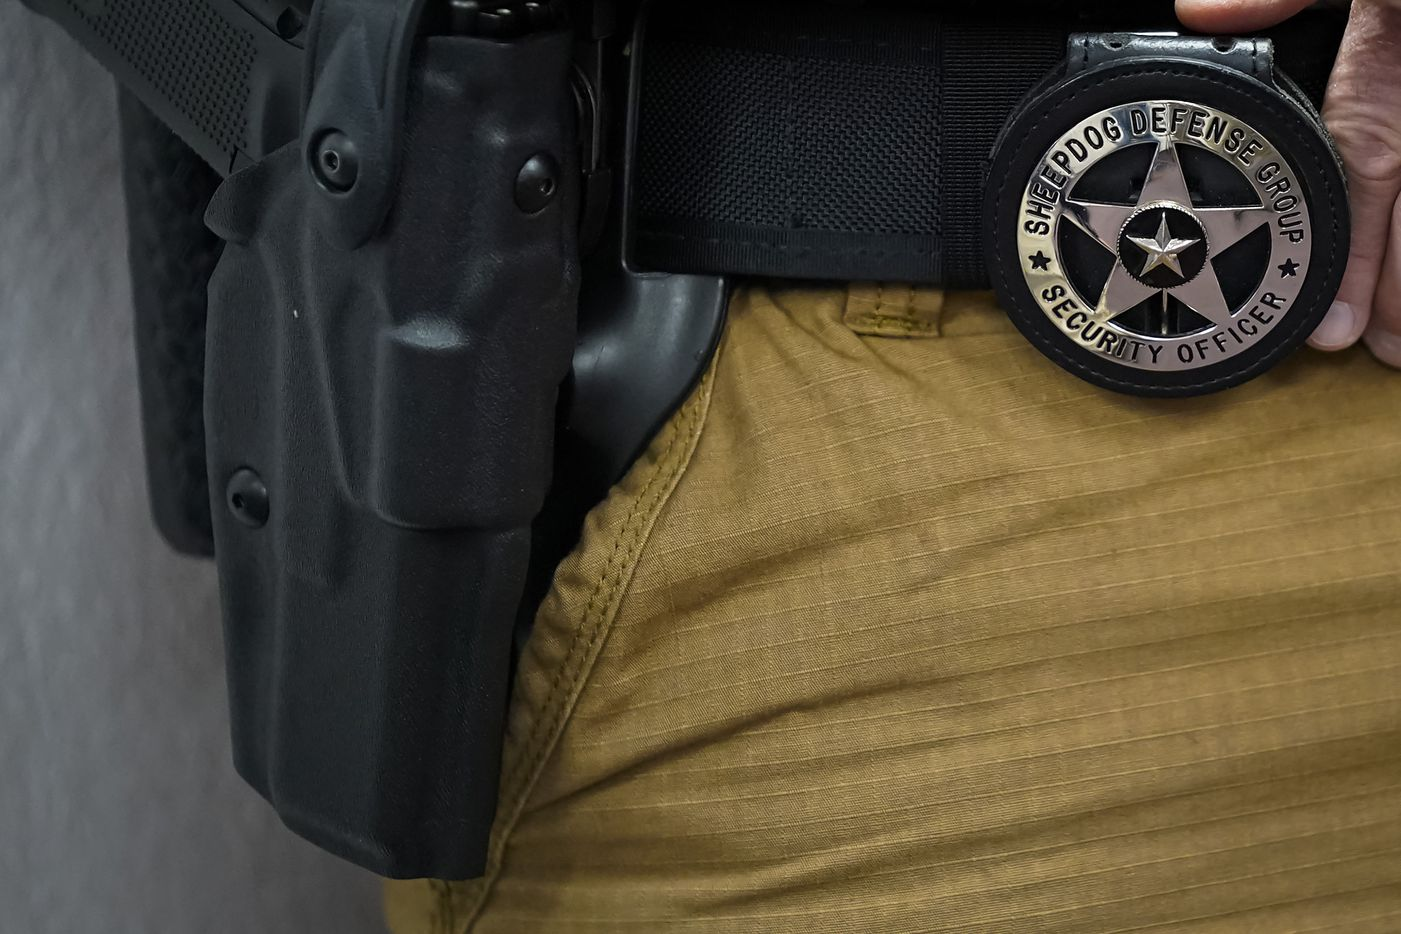 A participant wears a badge signifying they have met the organization's security officer requirements during a Sheepdog Defense Group armed security programs church safety training at Cornerstone Community Church on Sunday, Feb. 2, 2020 in Springtown, Texas.